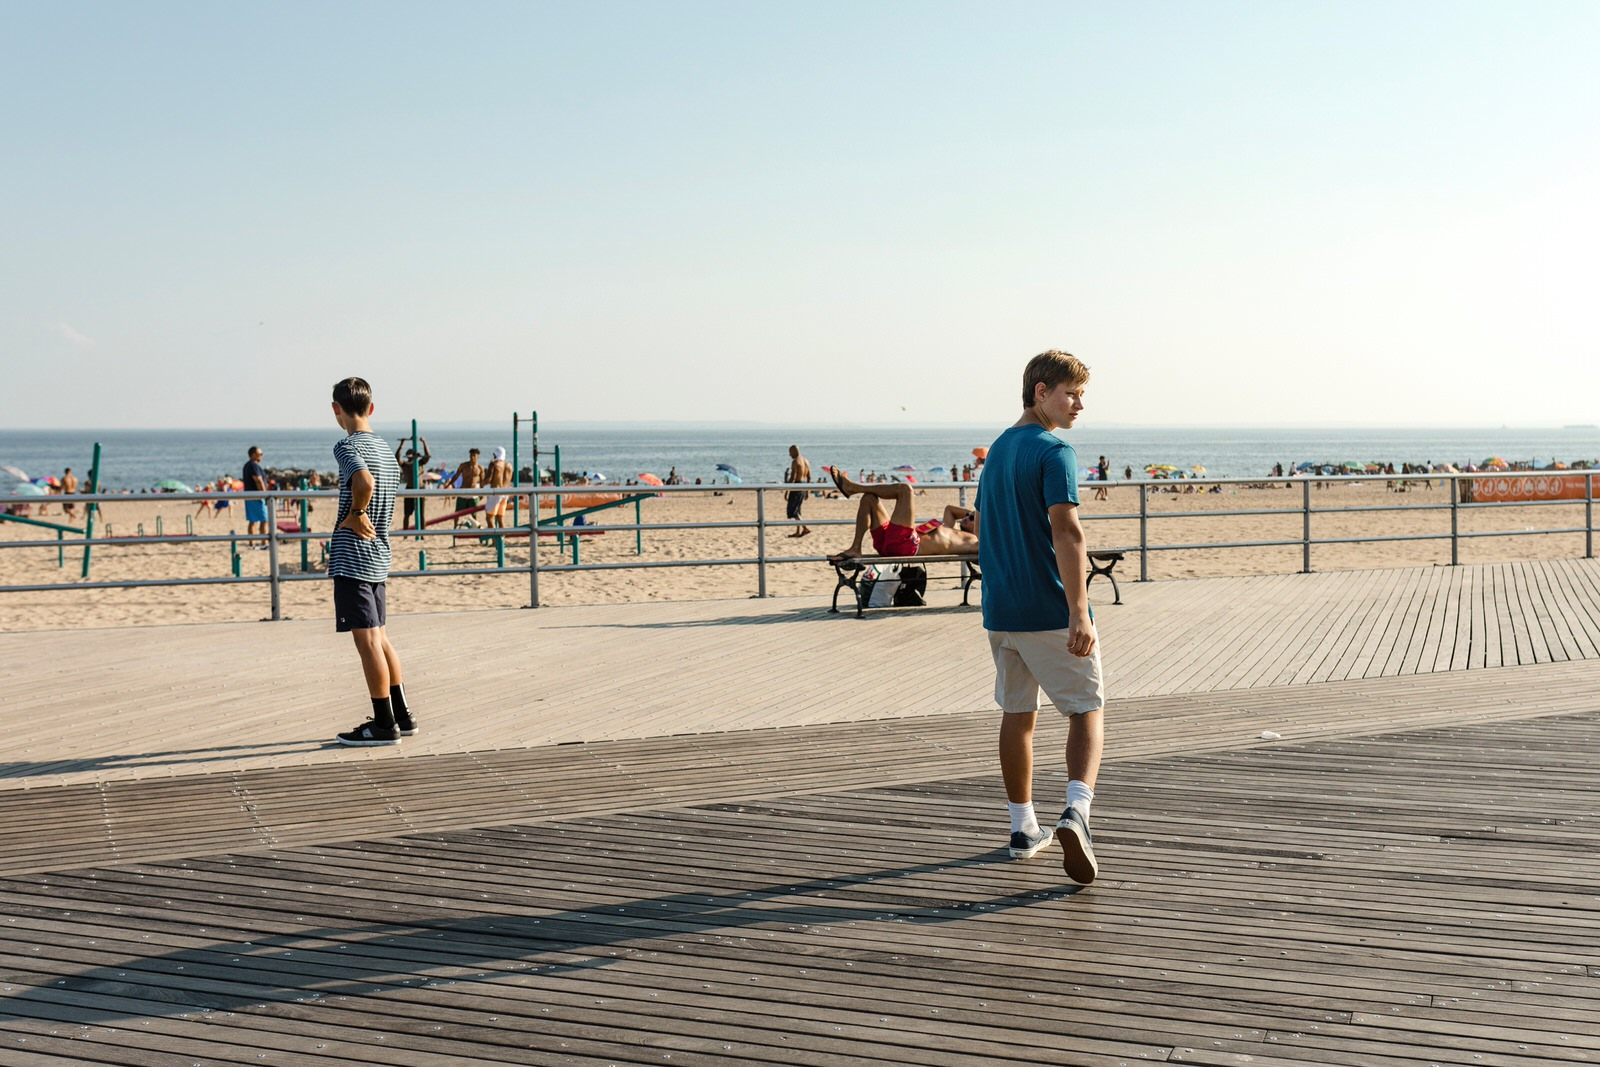 coney-island-day-in-life-family-photography-15.JPG